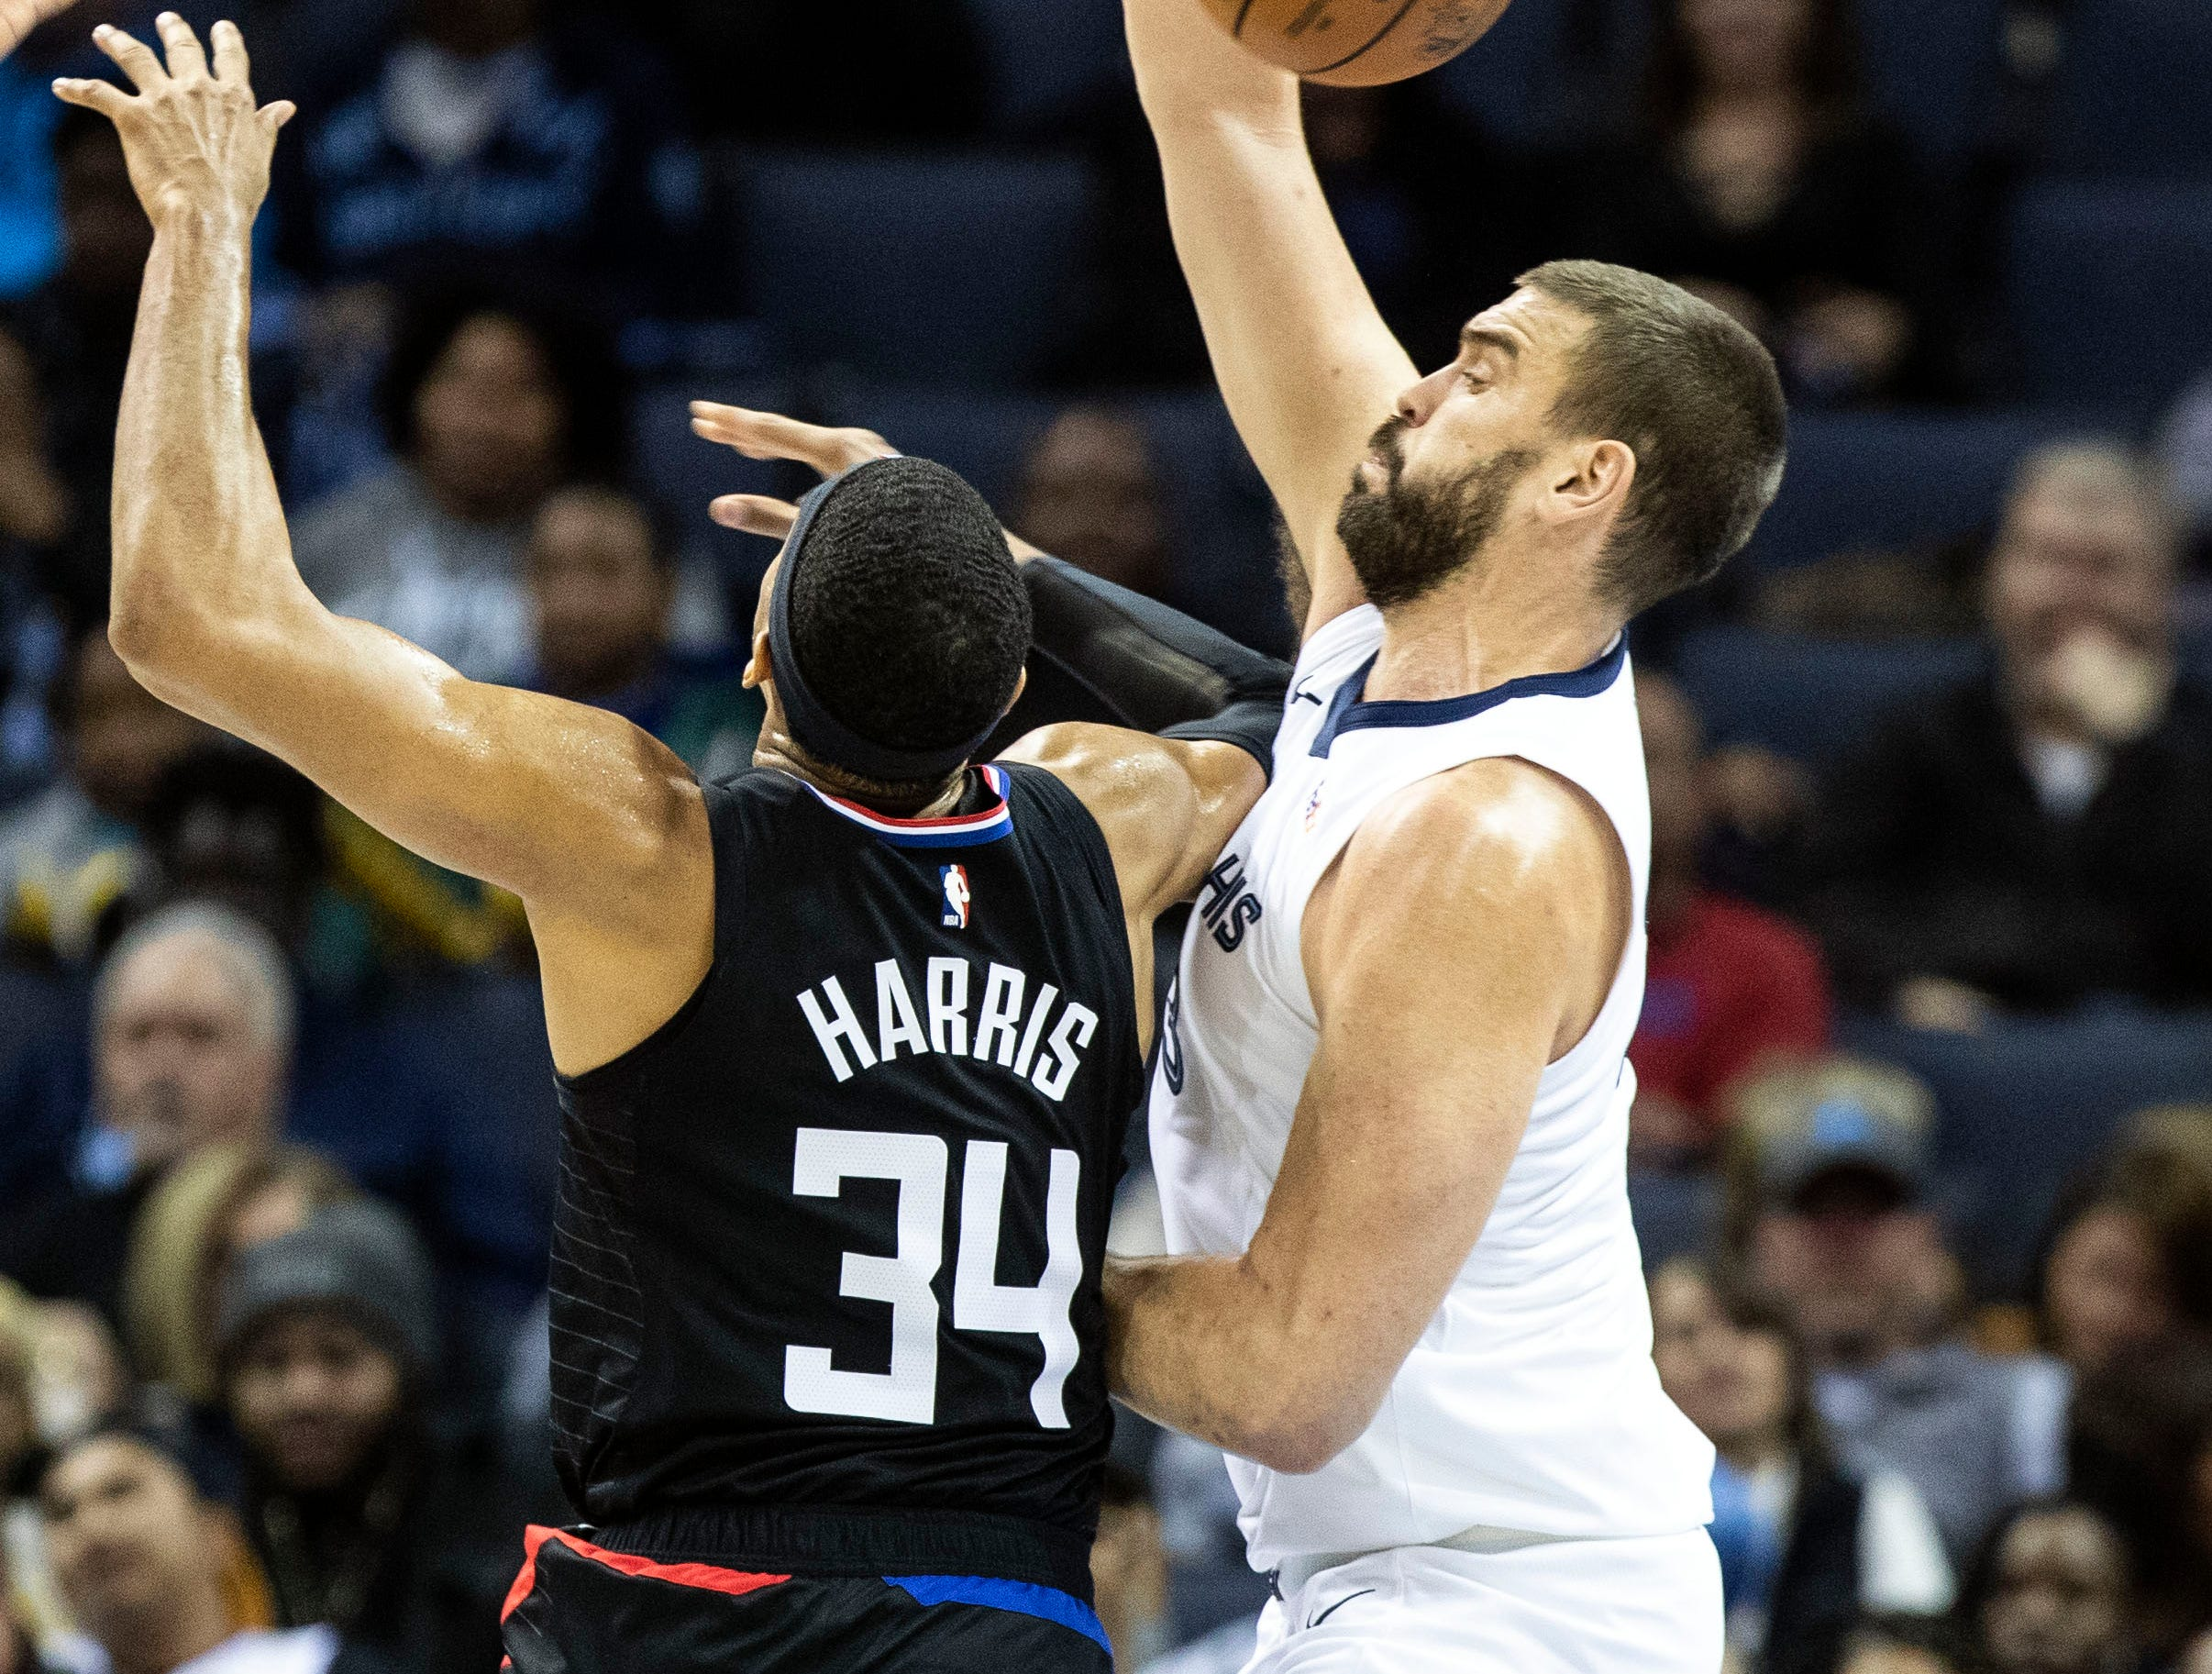 Memphis Grizzles center, Marc Gasol (33) blocks a shot attempt by Los Angeles Clippers forward Tobias Harris (34), during the first half of a NBA basketball game between the Memphis Grizzlies and the  Los Angeles Clippers in the Fedex Forum, Wednesday, Dec. 5, 2018.